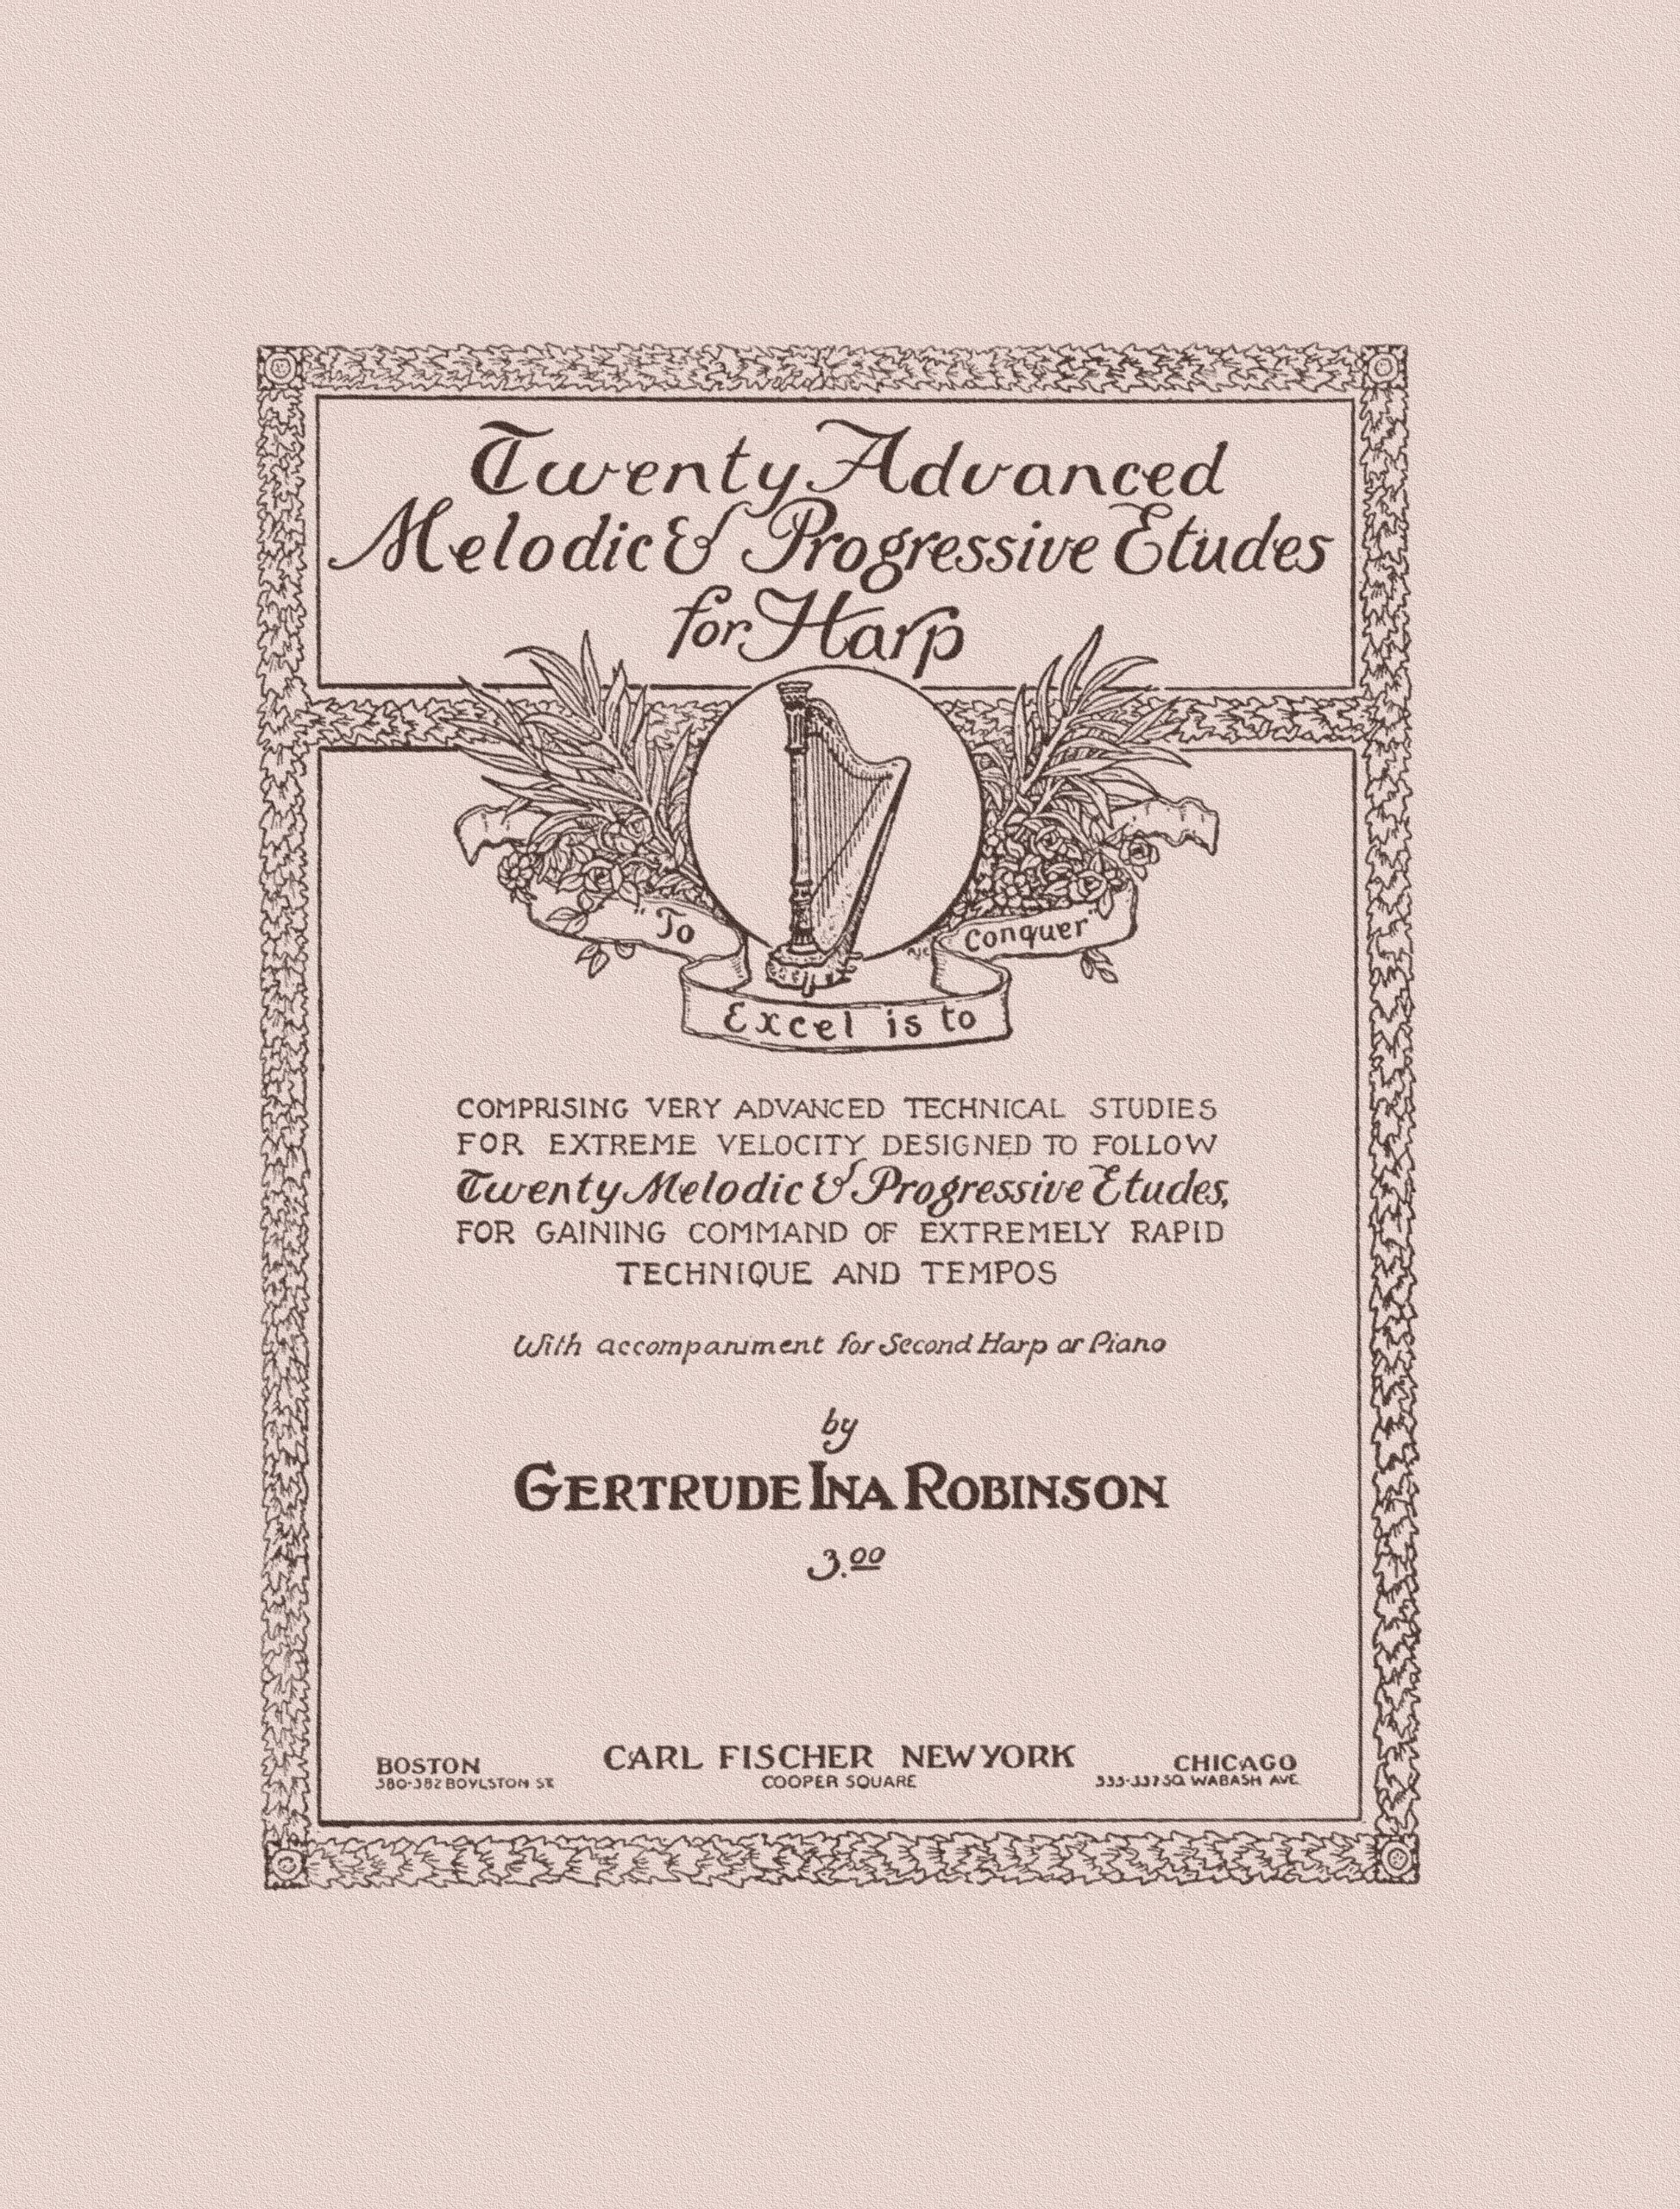 Download 20 Advanced Melodic & Progressive Etudes for Harp by Gertrude Robinson. Very Advanced Technical Studies for Extreme Velocity, Technique, and Tempo. Accompaniment for Second Harp or Piano. [Facsimile. Re-Imaged from Original for Great Clarity.] ebook